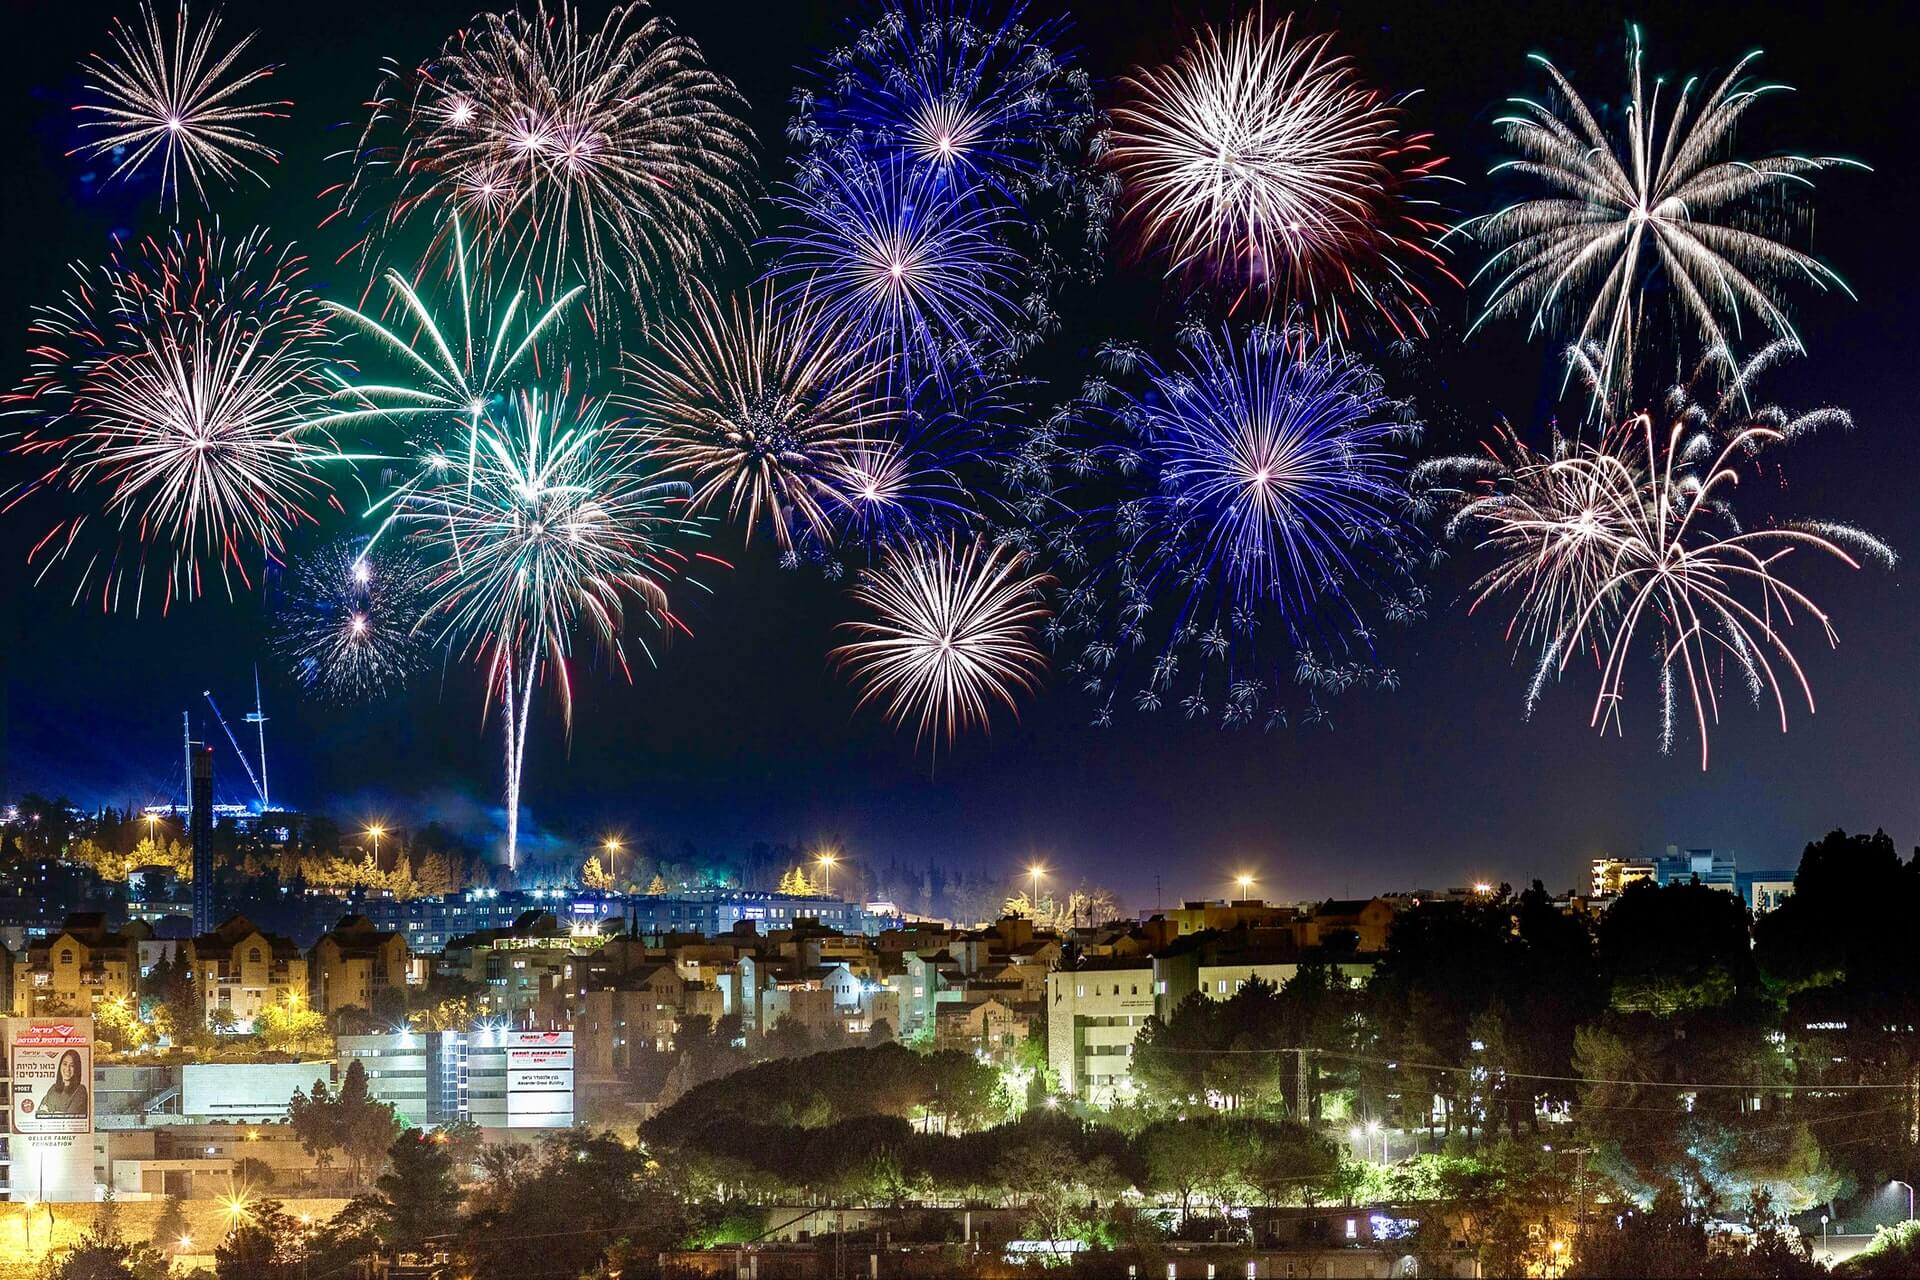 Places to Celebrate Diwali in India